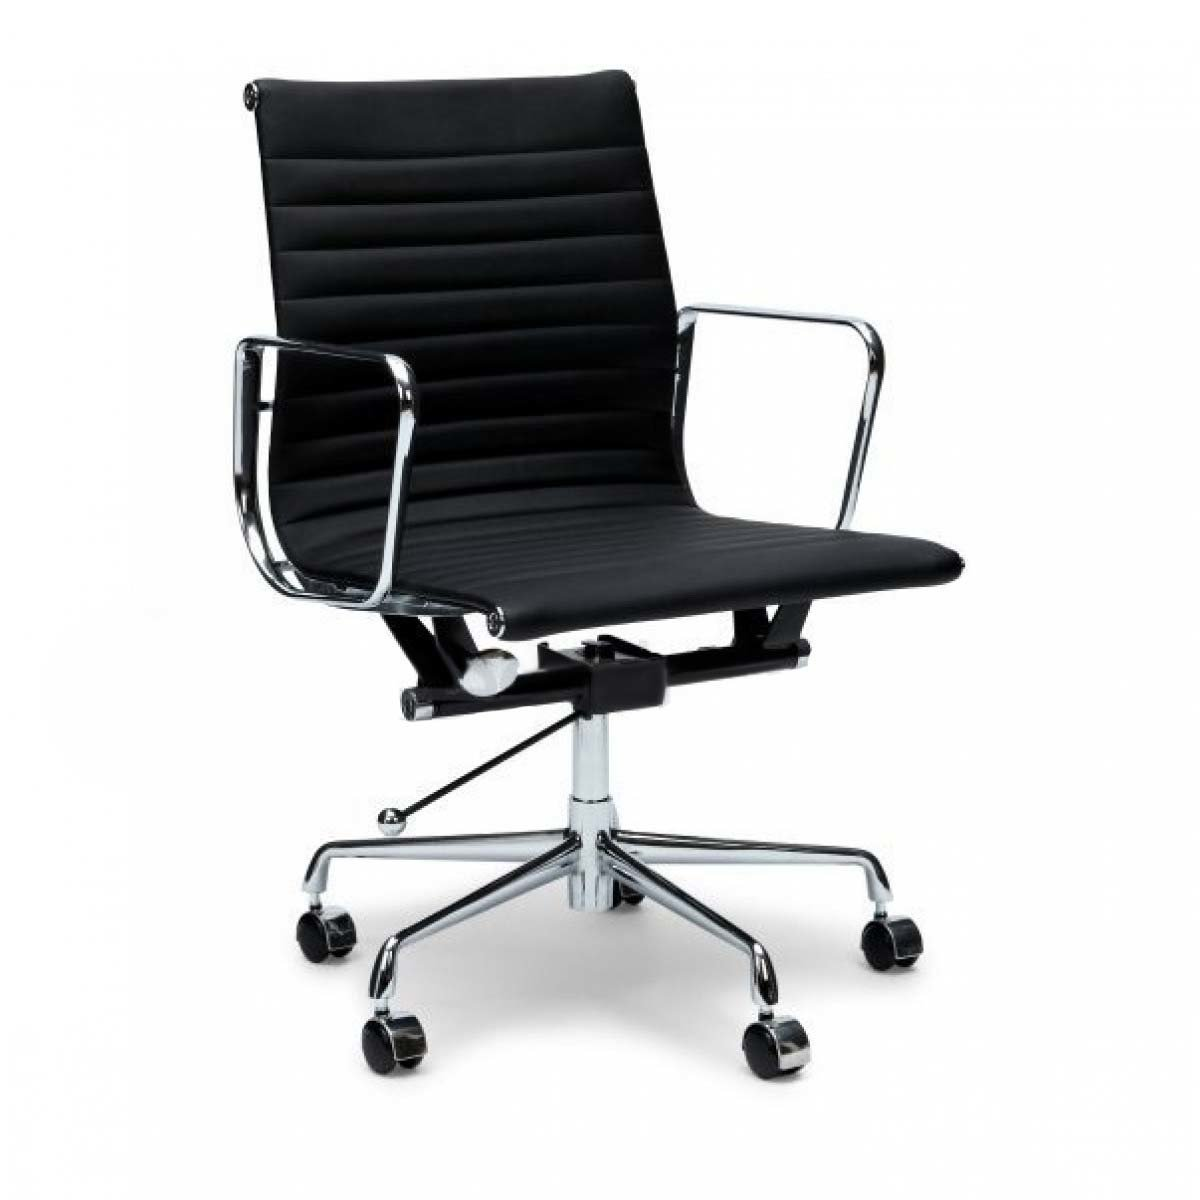 Officeworks Ergonomic Chairs Office Chairs Compare Prices And Save On Shopping In Australia